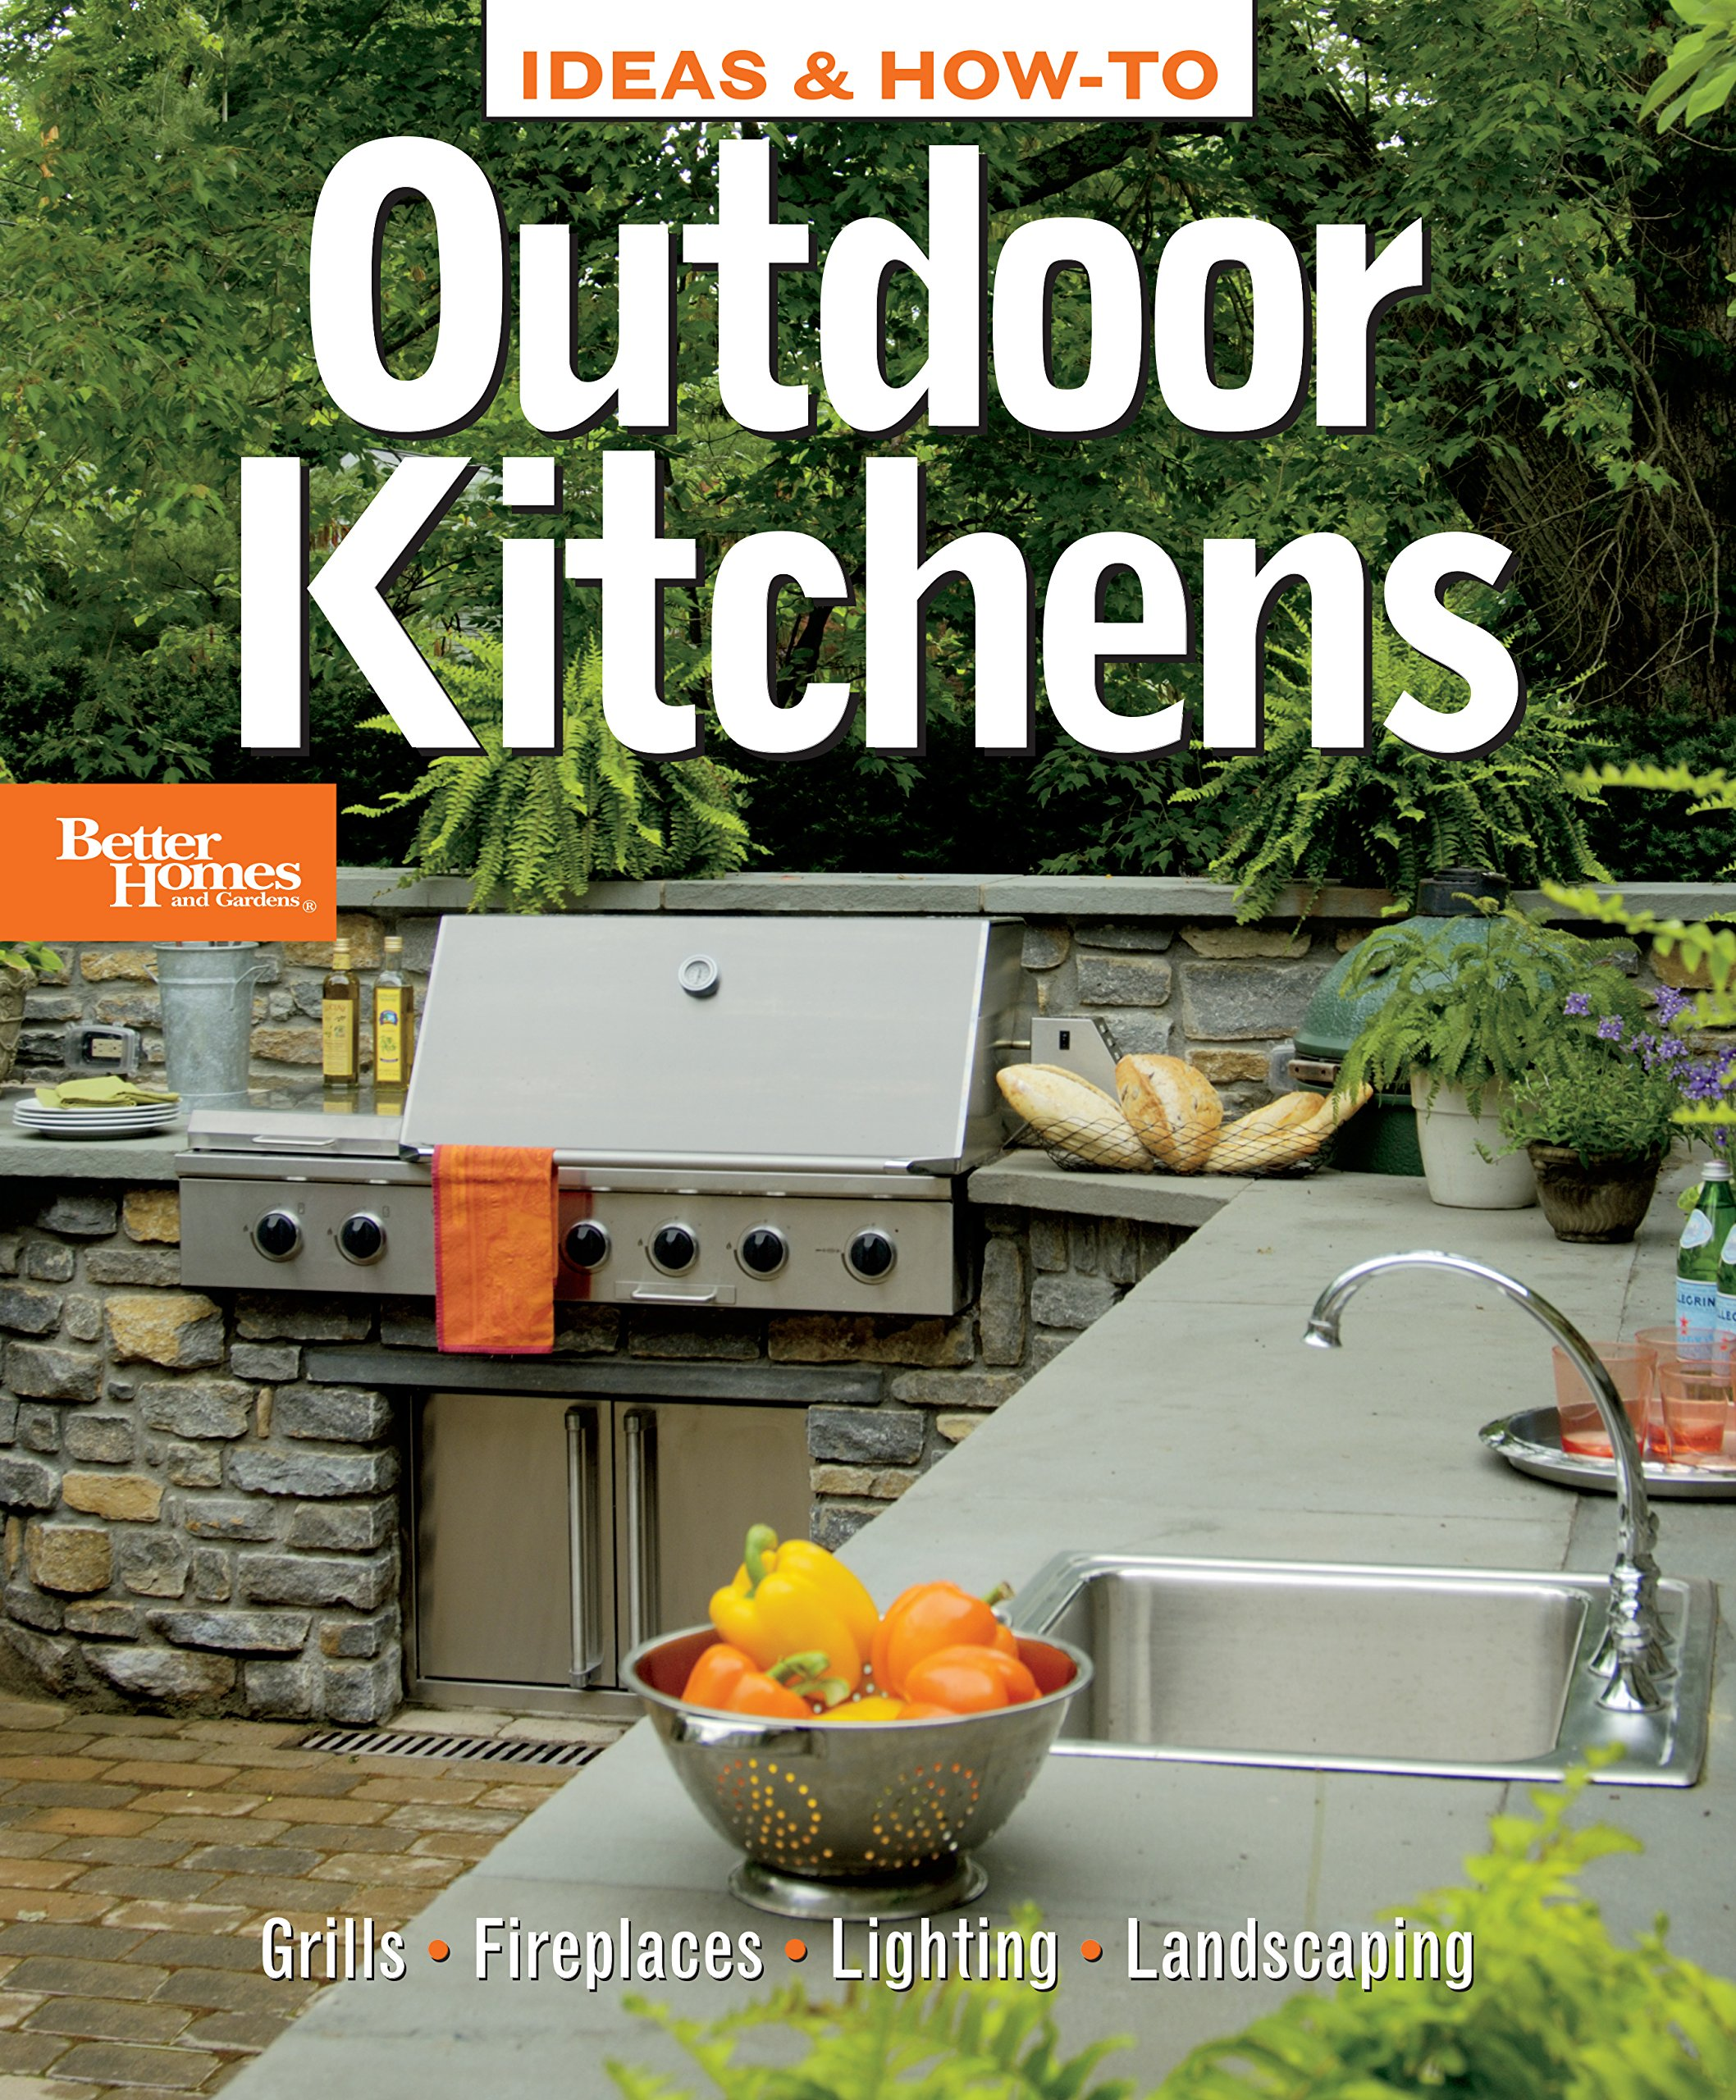 ideas how to outdoor kitchens better homes and gardens better homes and gardens home better homes and gardens 0014005235435 amazoncom books - Homes And Gardens Kitchens